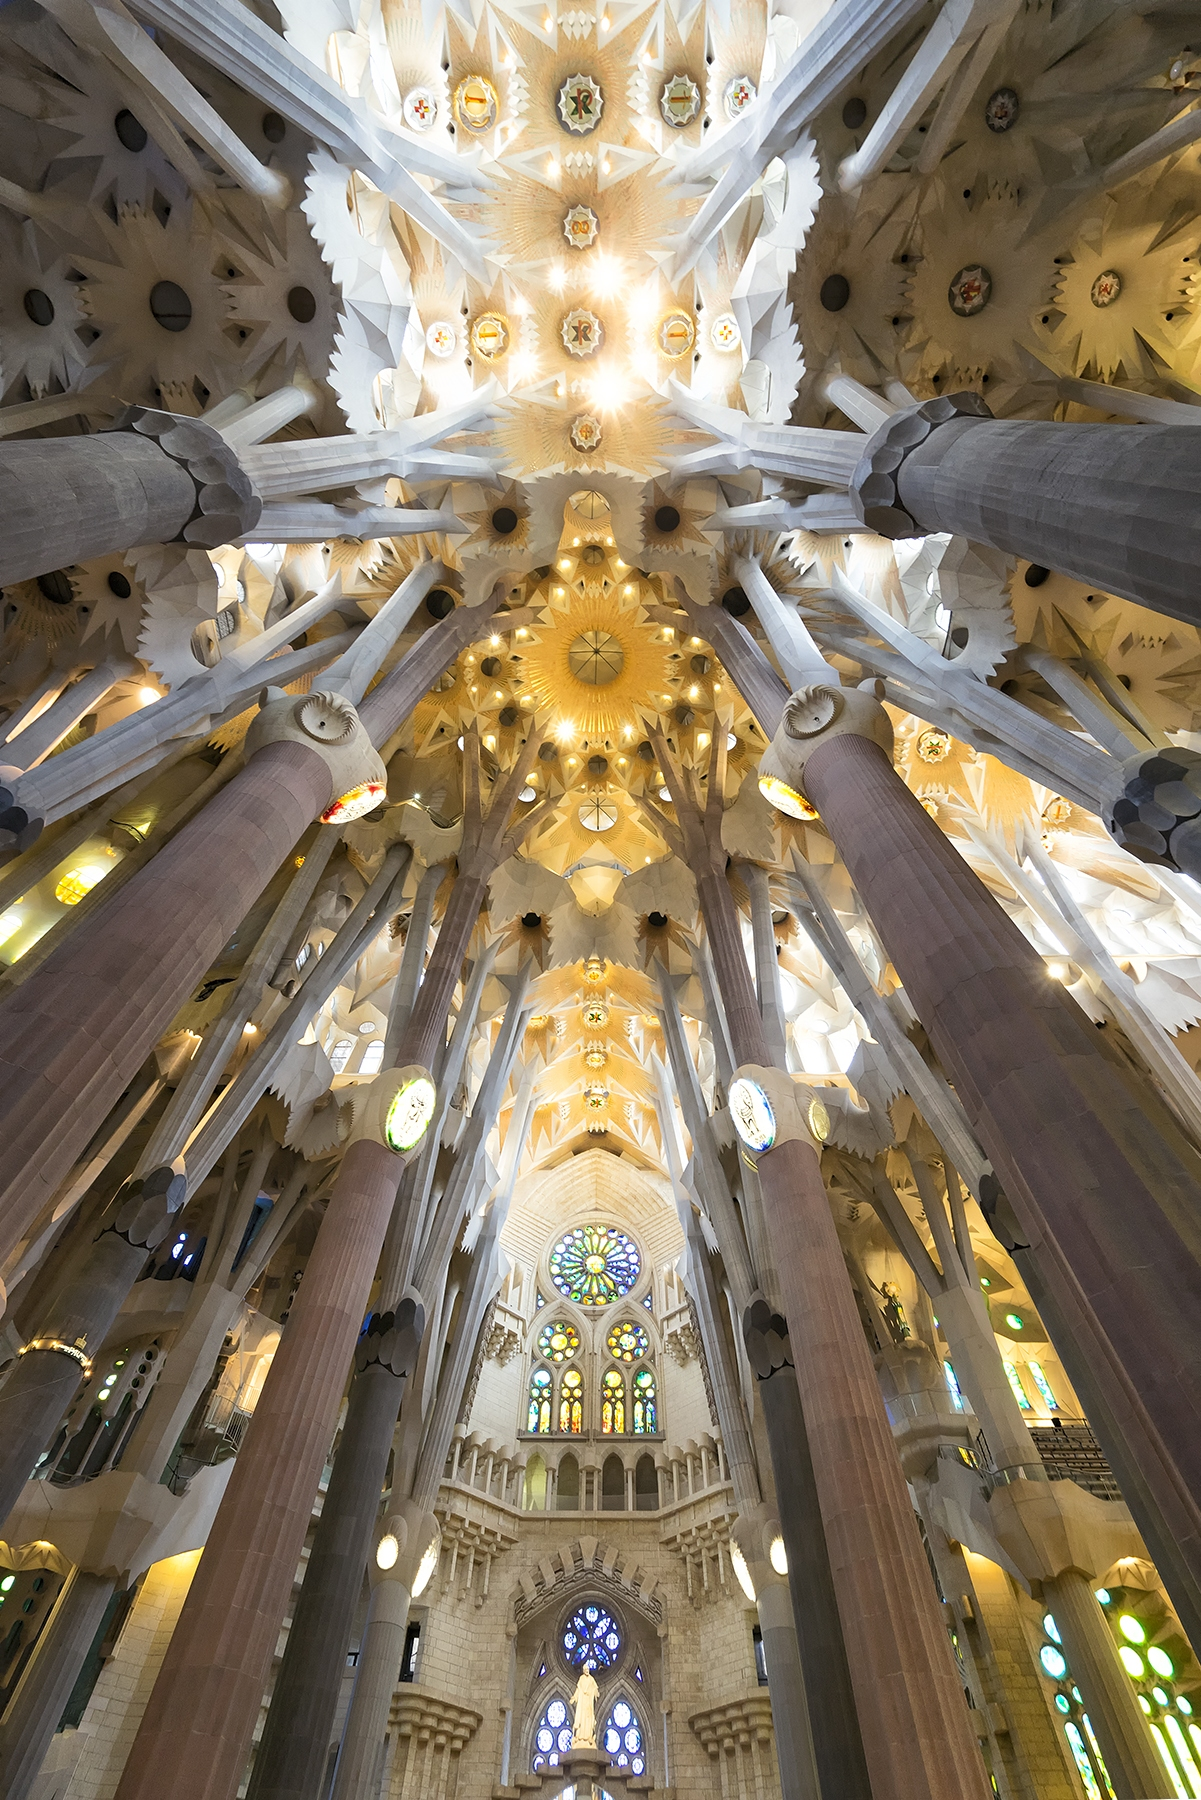 la sagrada familia, Basílica i Temple Expiatori de la Sagrada Família, gaudi, roman catholic church, barcelona, spain, interior, architecture, holy family, Antoni Gaudí,